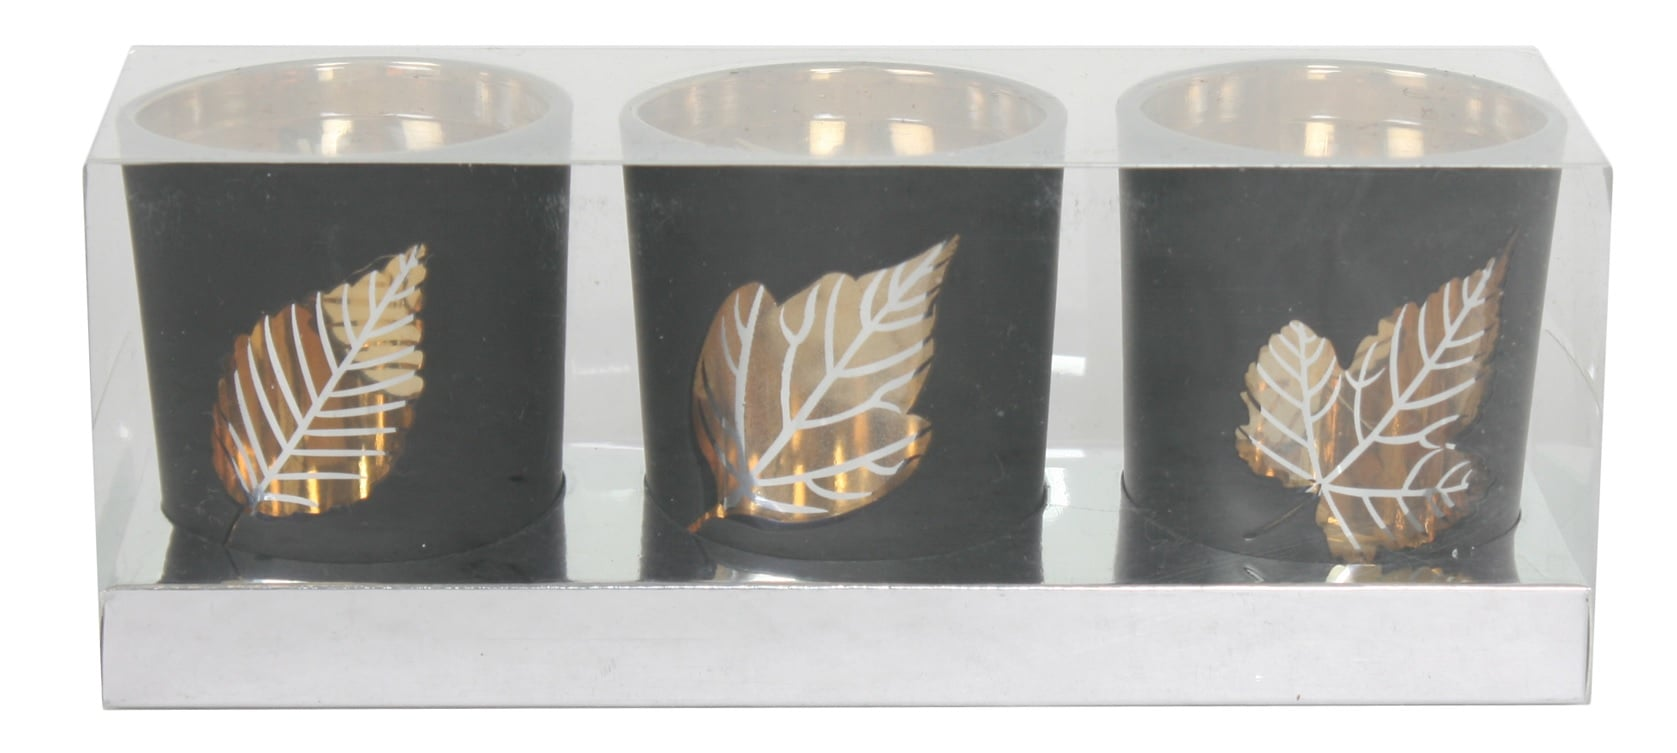 Straits 14929-G Leaf Tealight Holder Gold